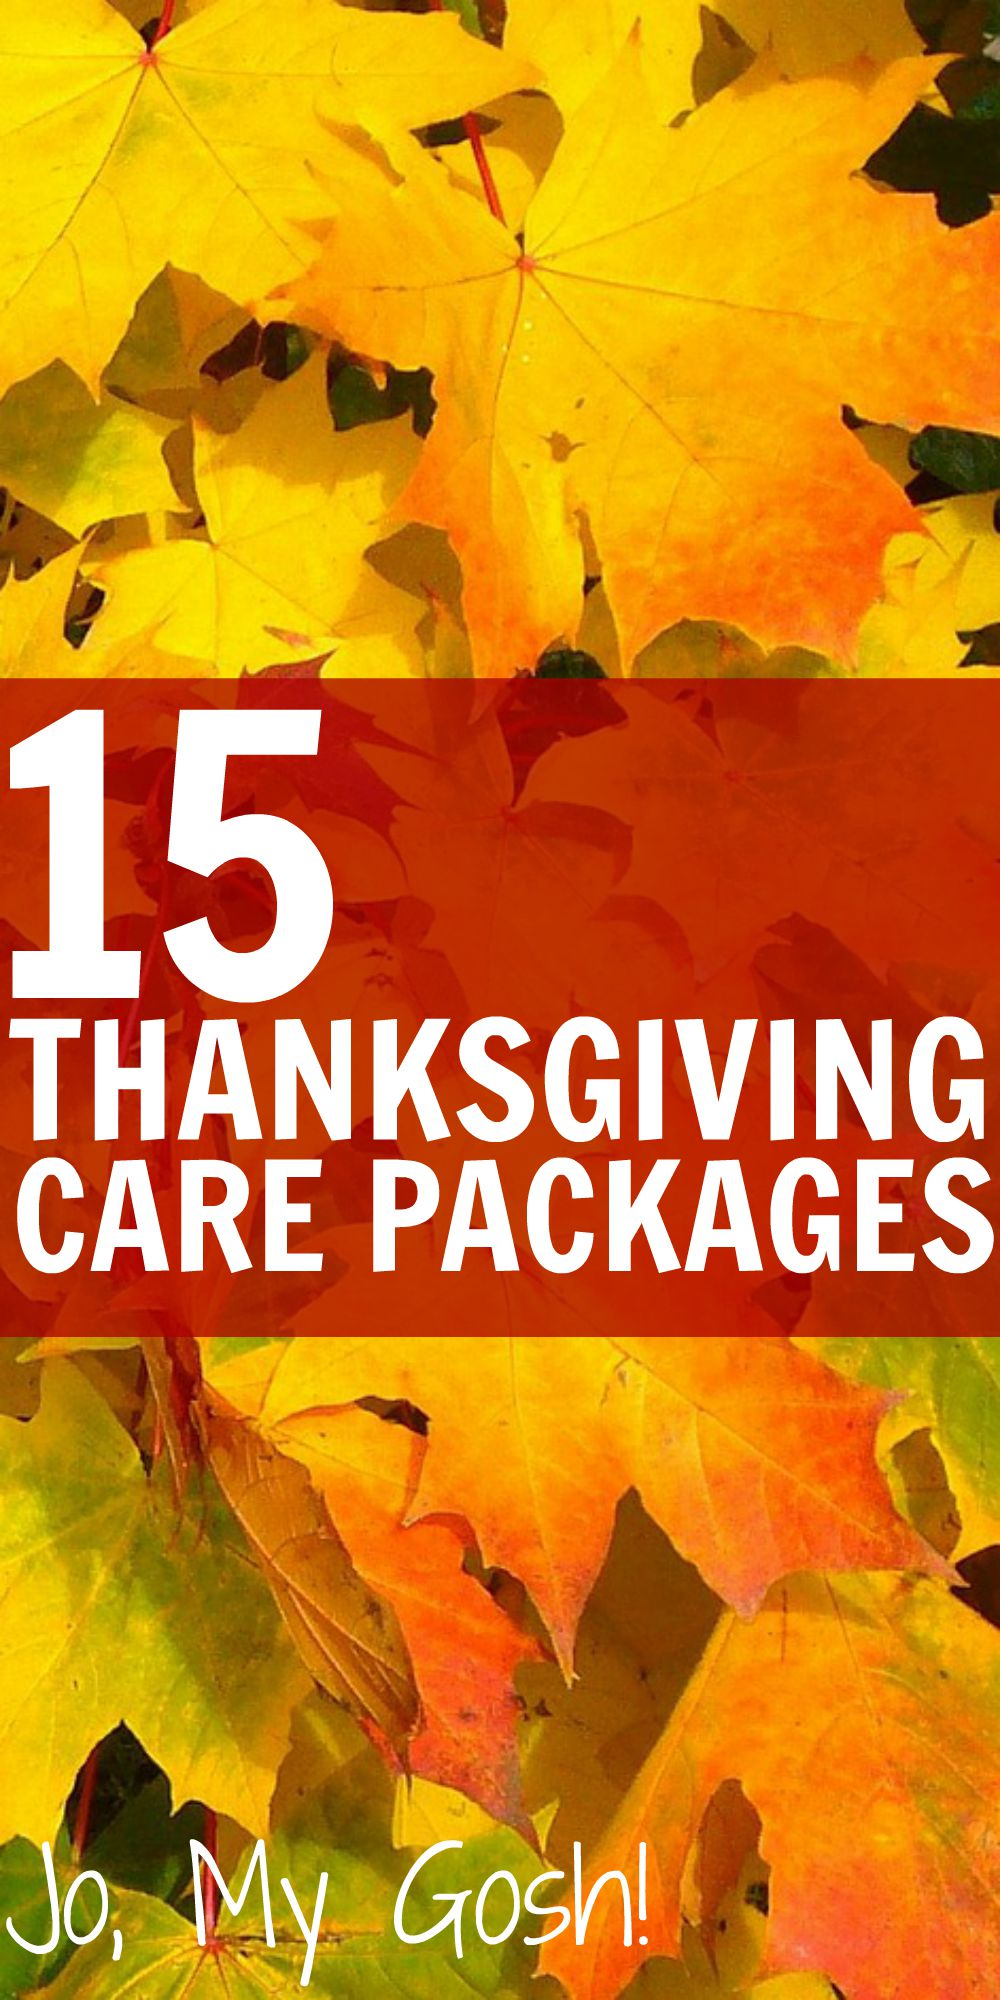 15 Thanksgiving Care Packages